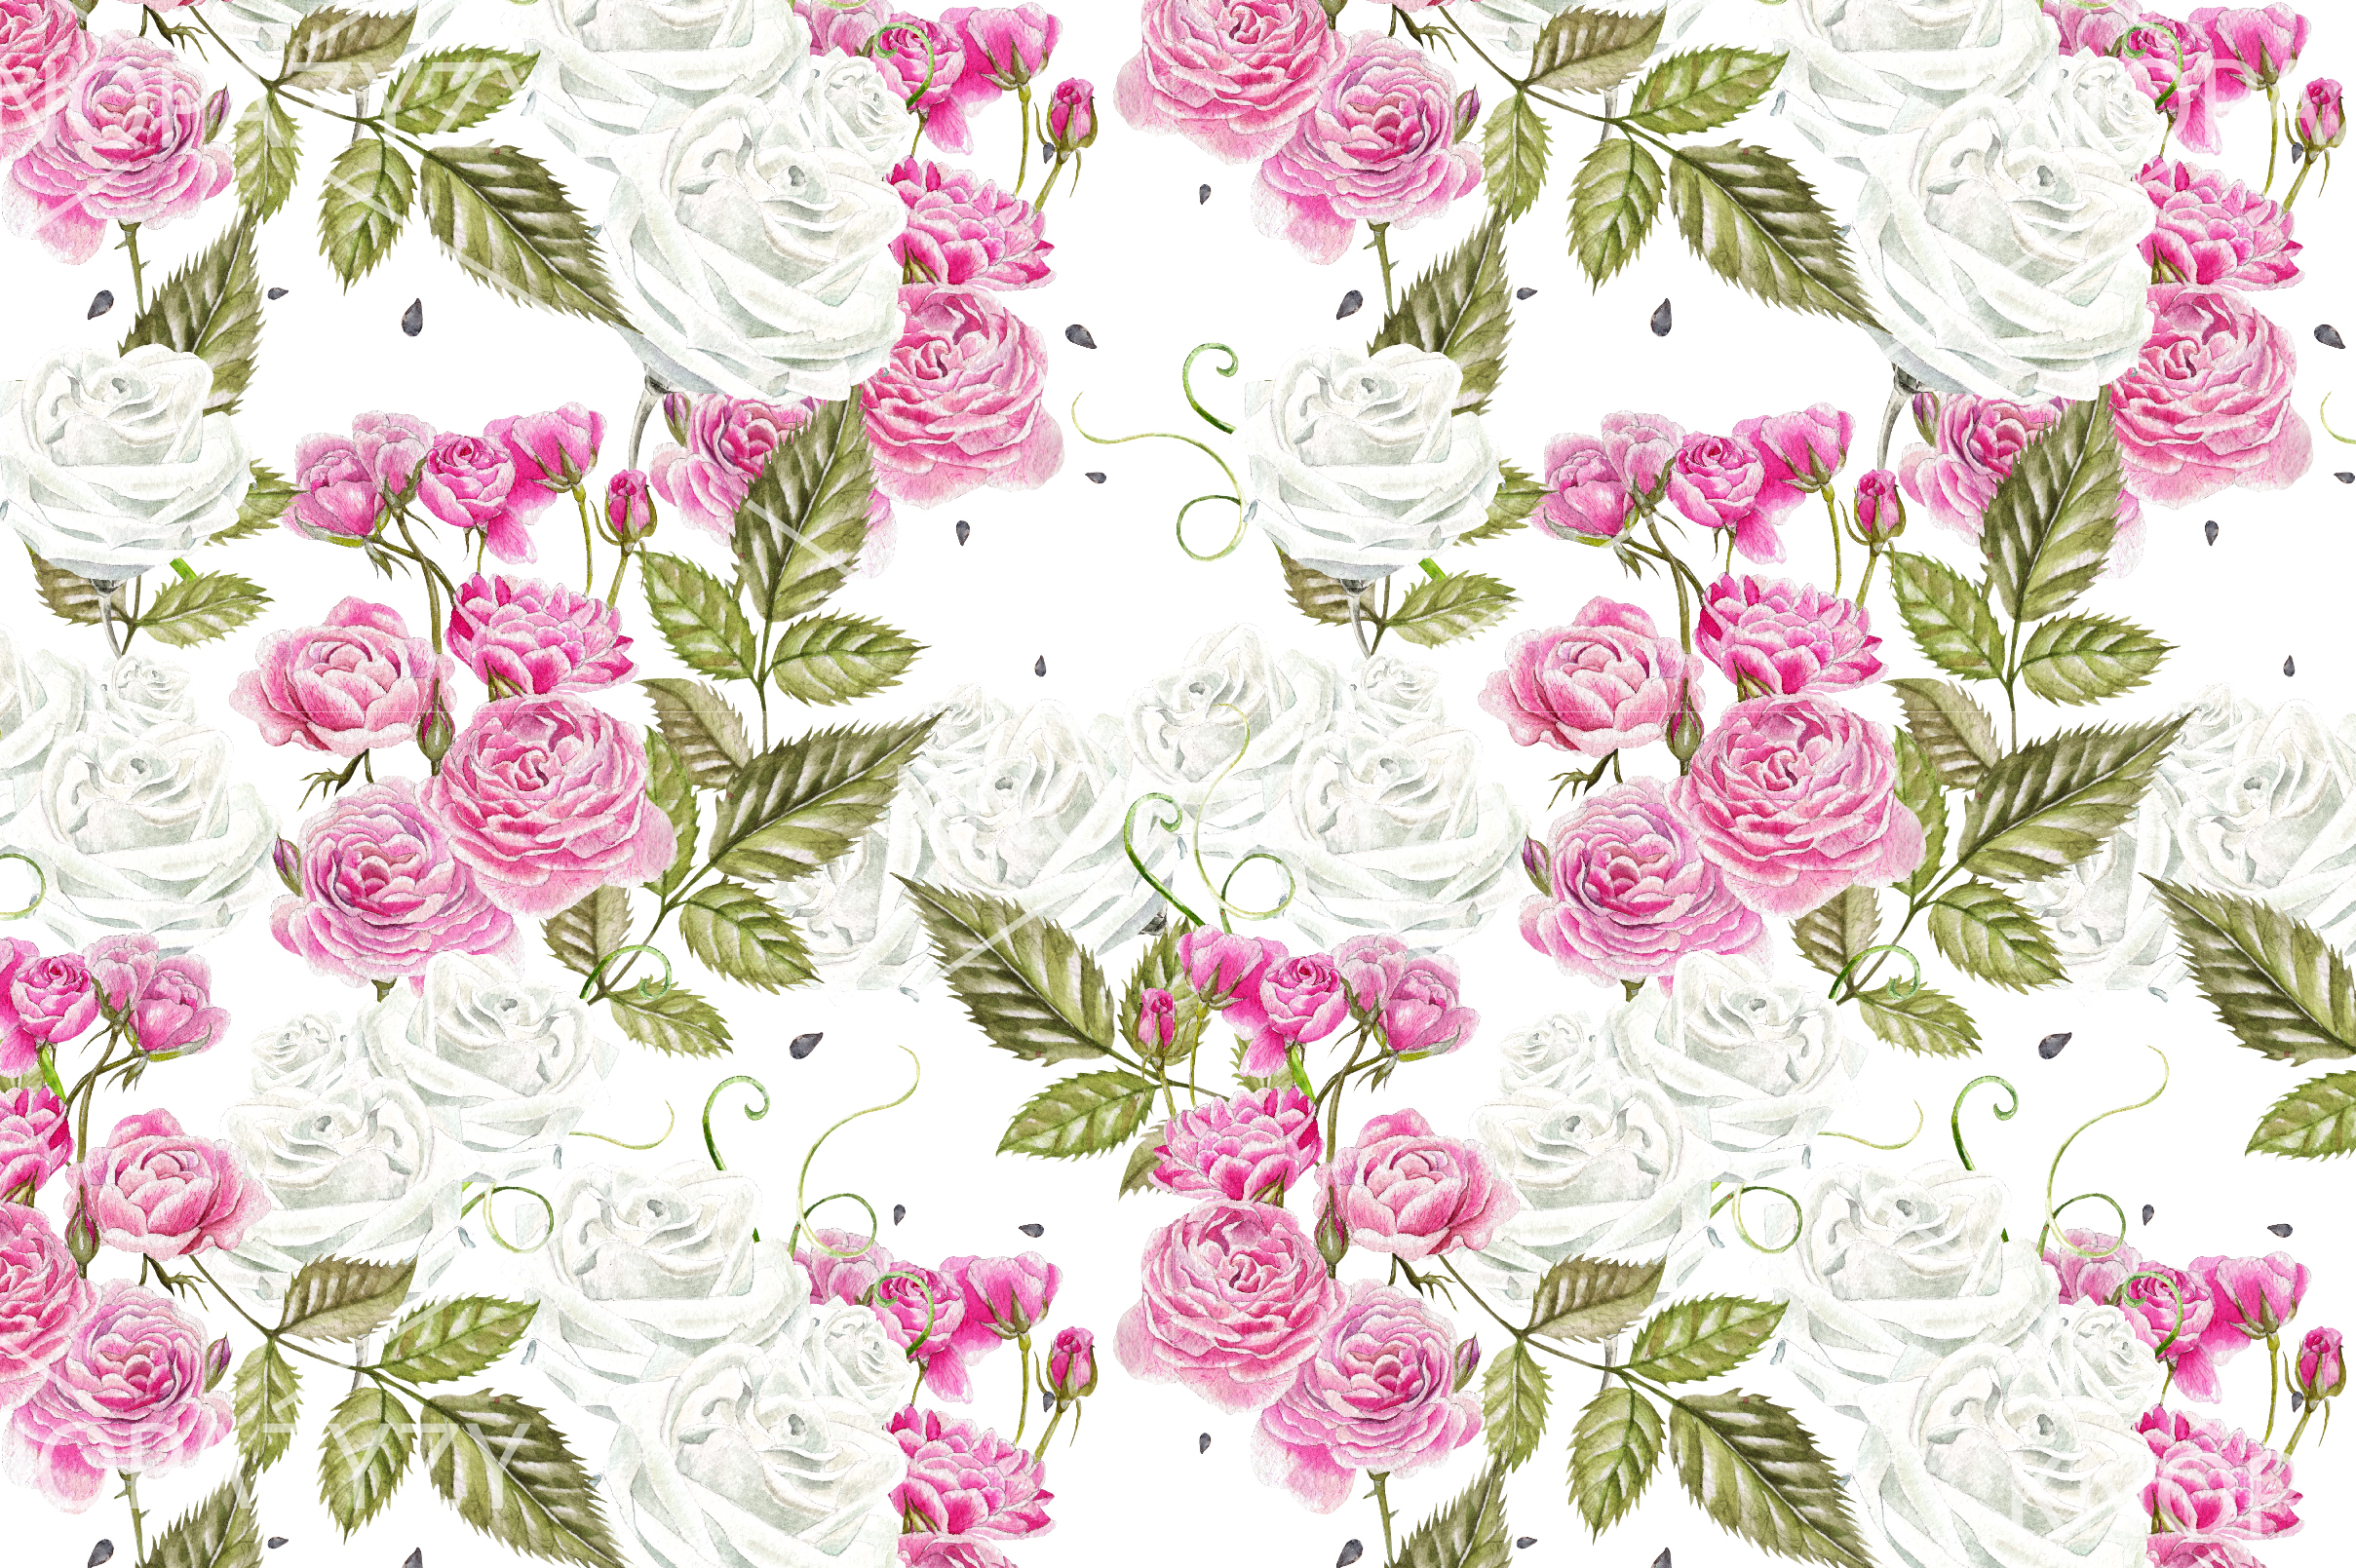 15 Hand Drawn Watercolor PATTERNS example image 2